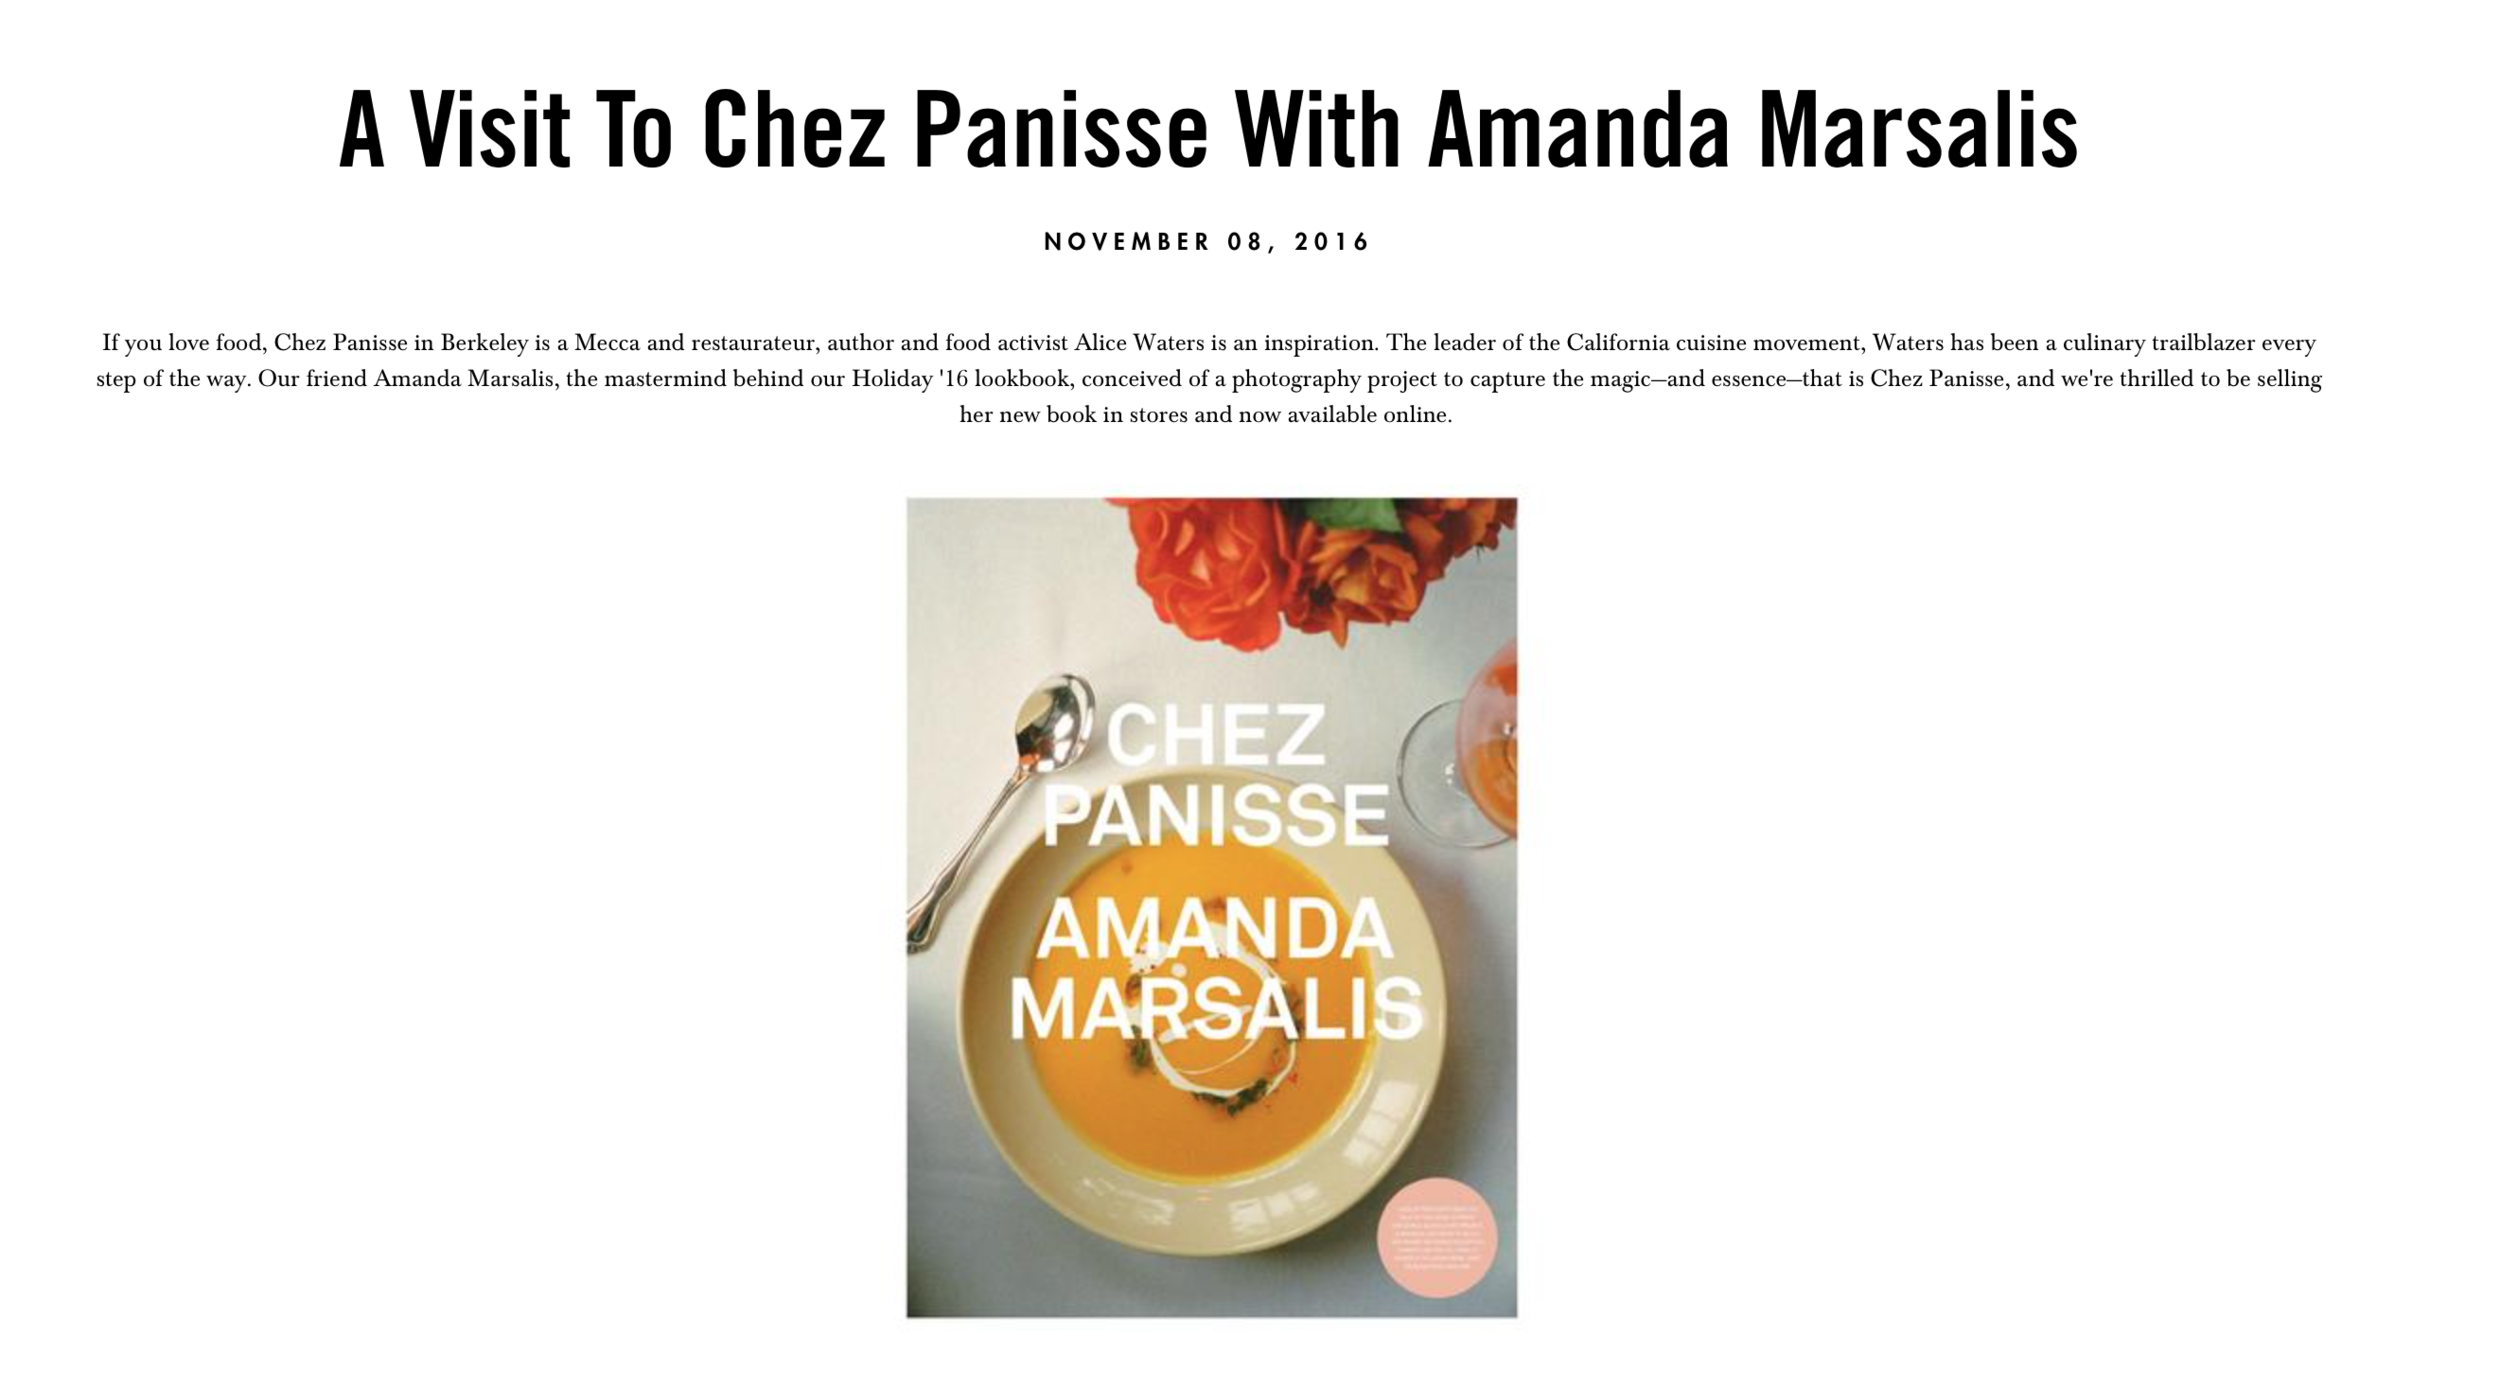 https://www.clarev.com/blogs/la-vie-cv/a-visit-to-chez-panisse-with-amanda-marsalis